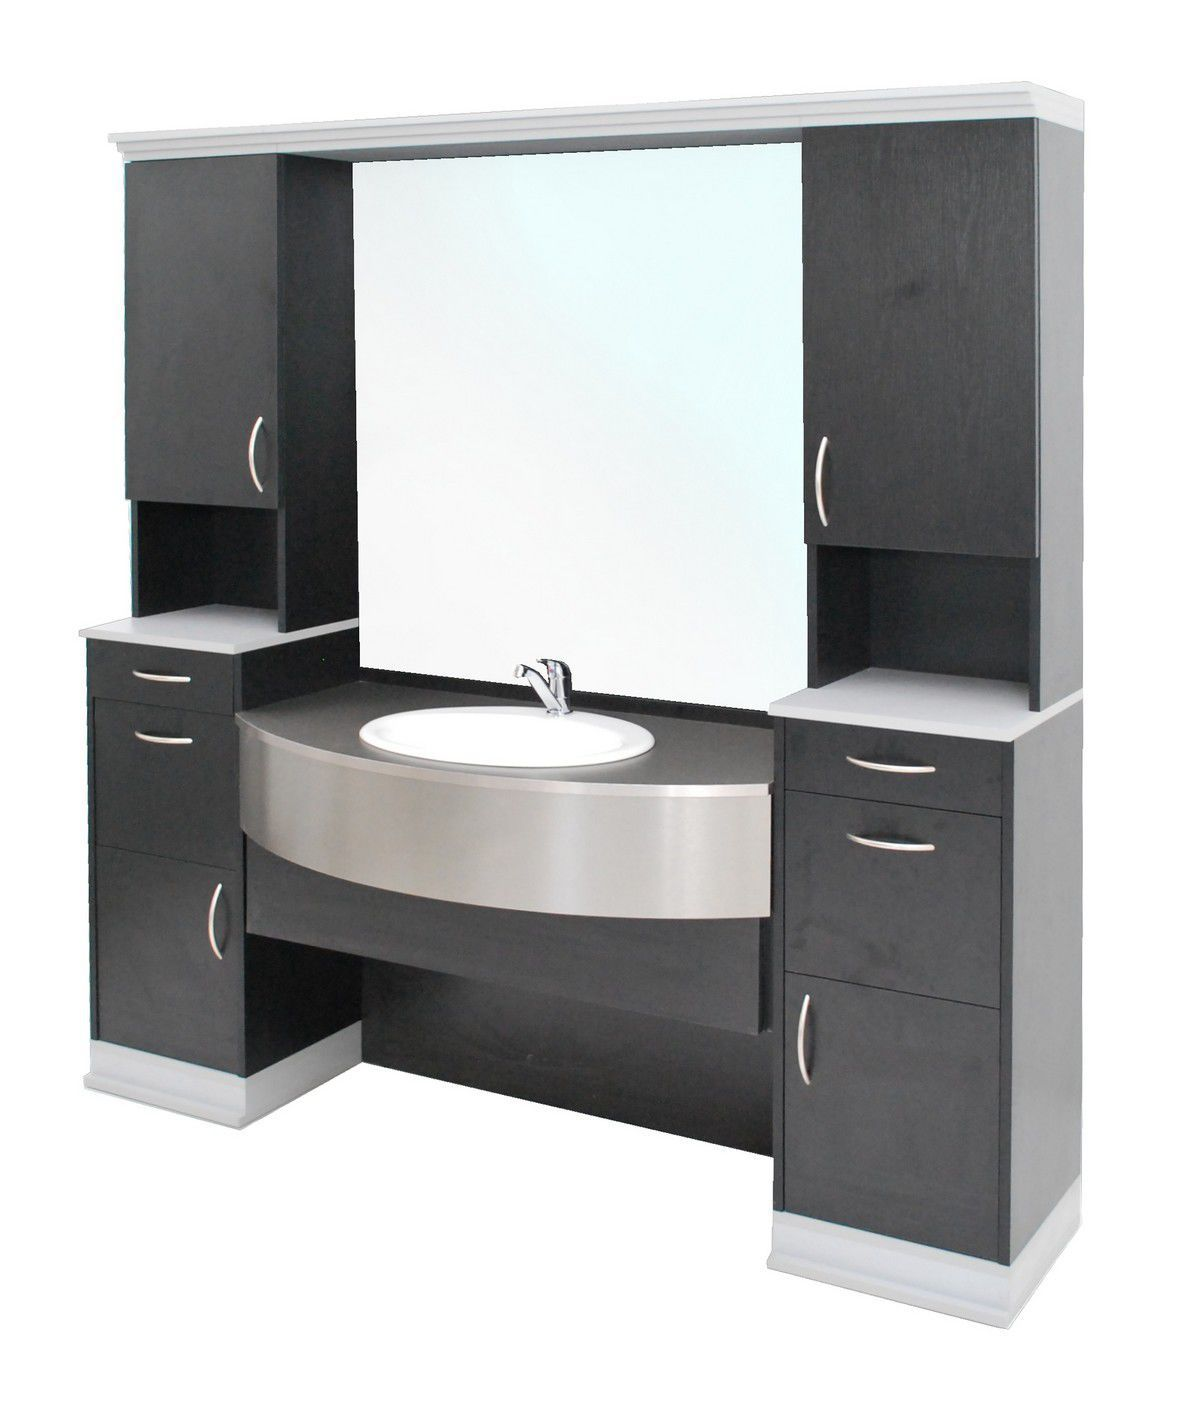 Free Standing Washbasin Cabinet Wooden Contemporary With  # Muebles Boutique Srl